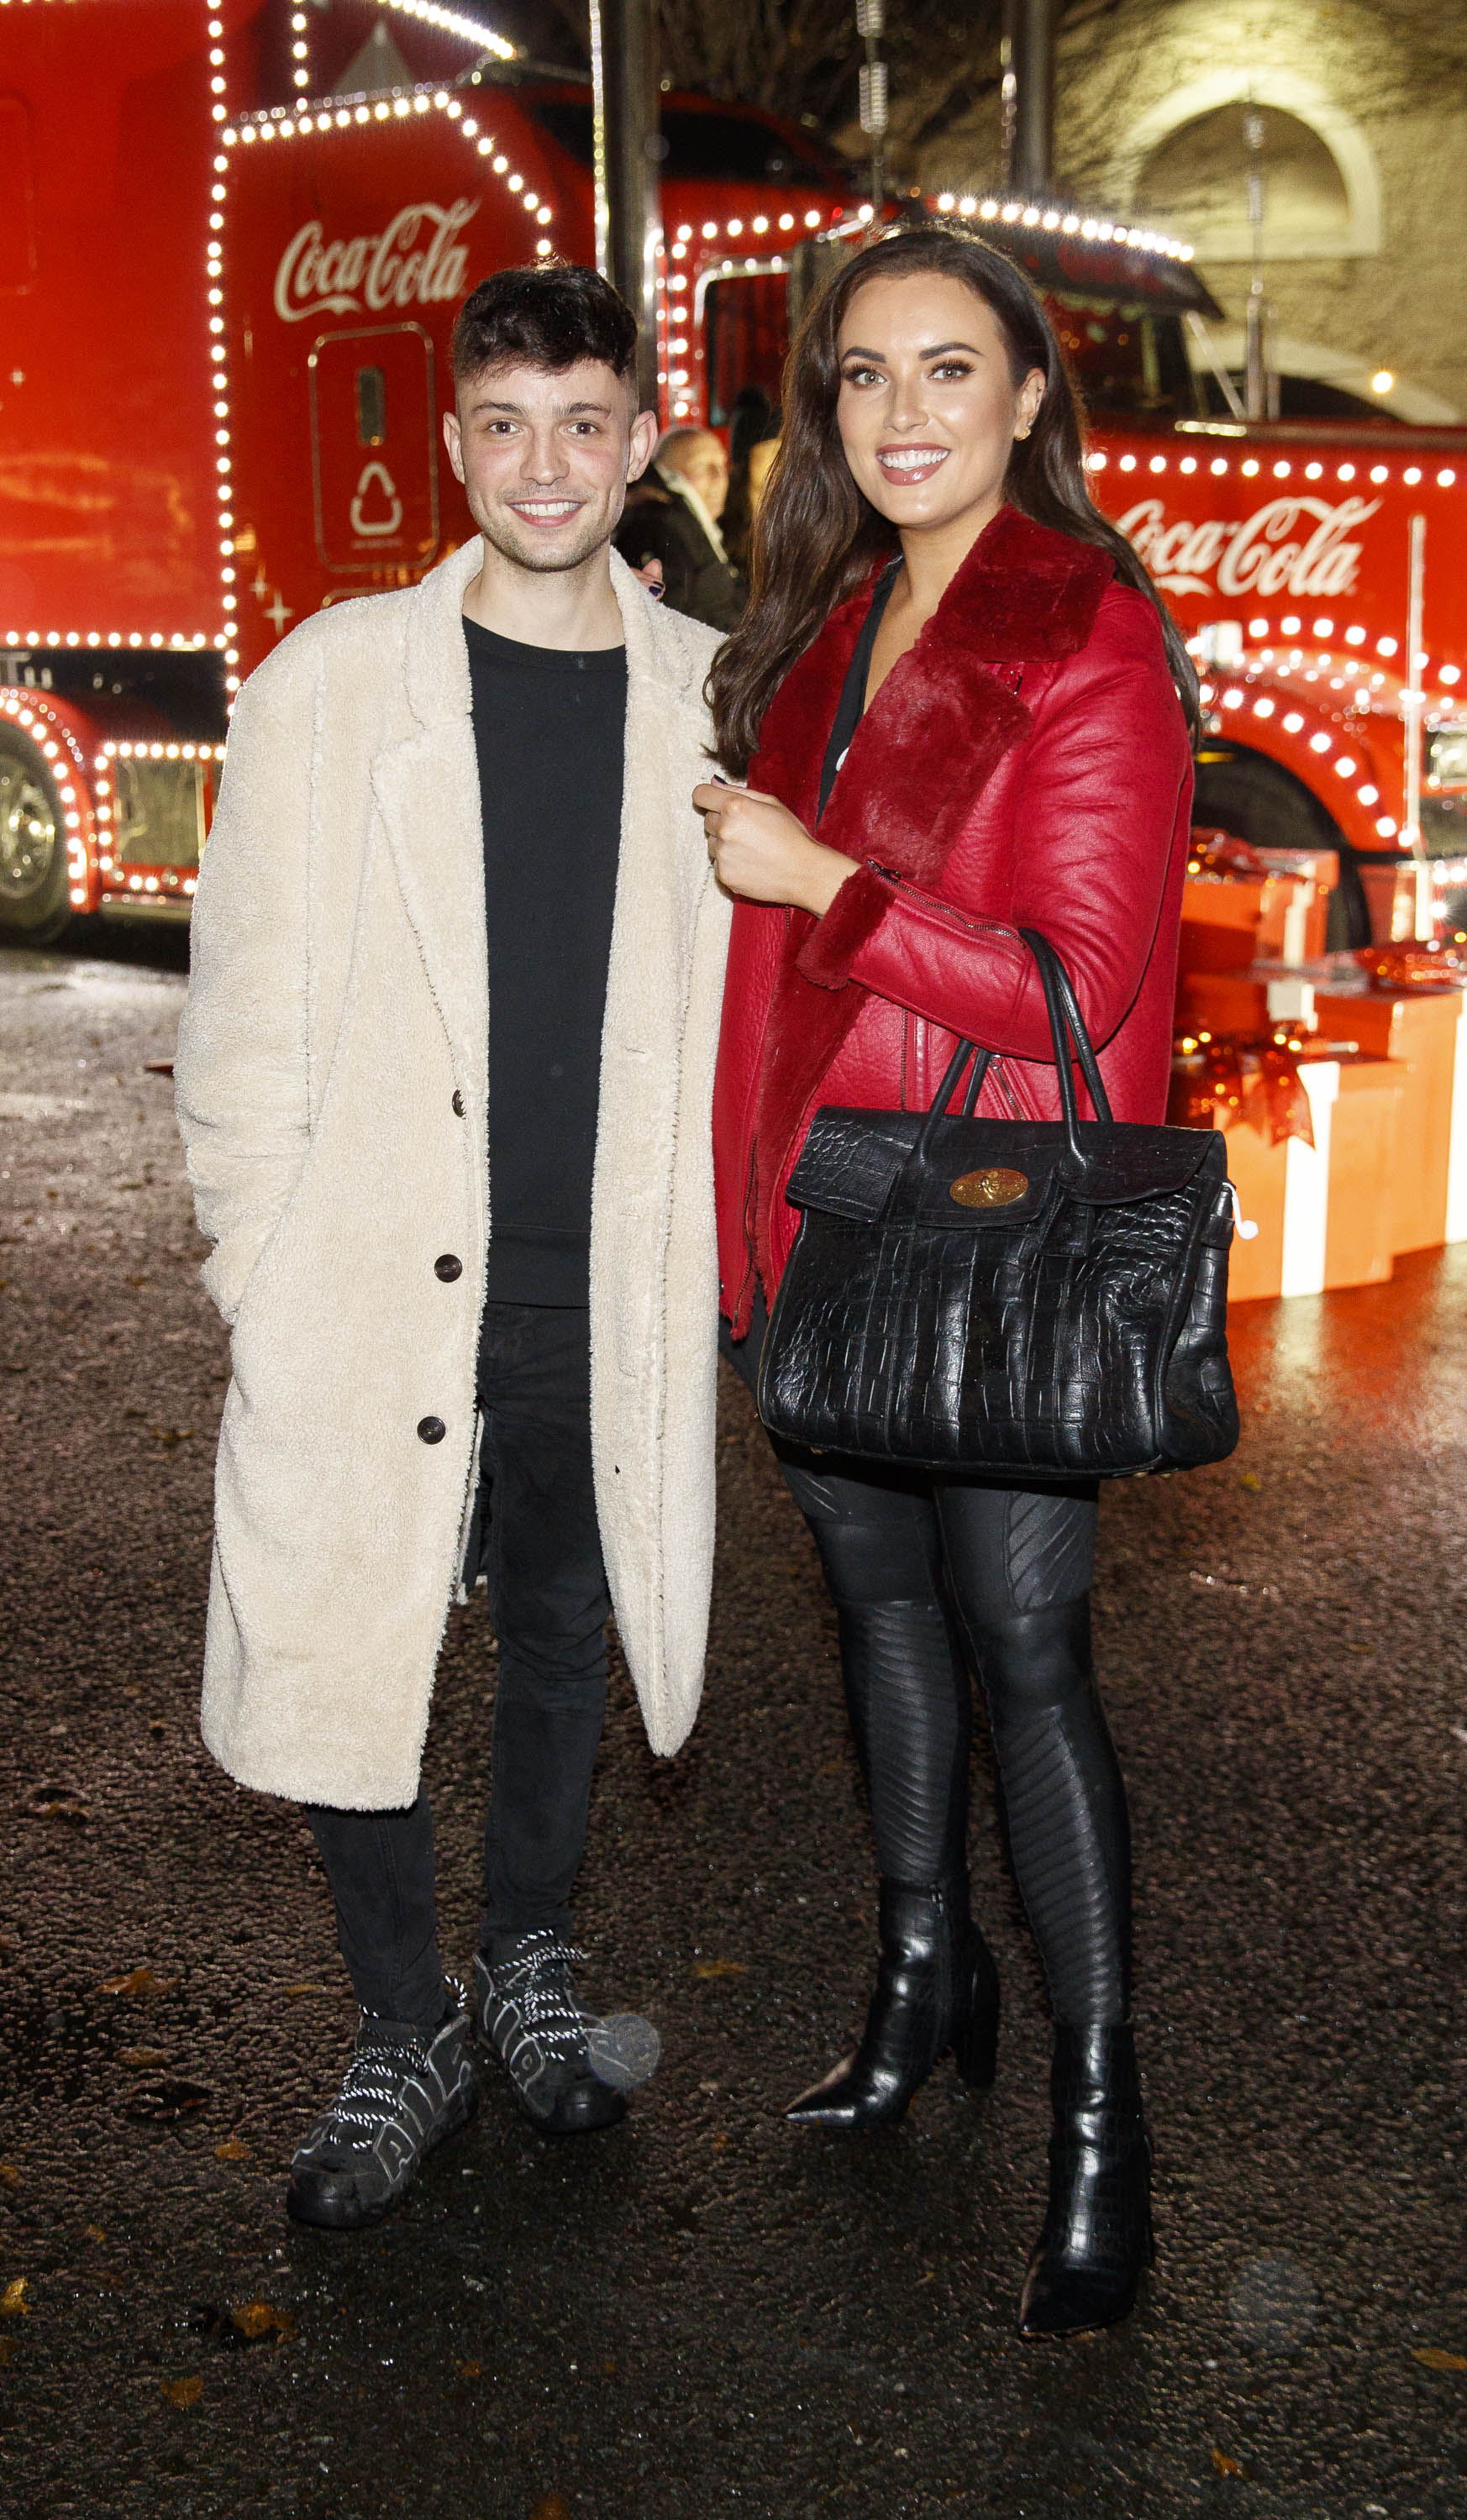 James Kavanagh and Holly Carpenter pictured at Coca-Cola's Christmas Truck Tour launch which took place Monday 25th November at the RDS, Dublin. Photo: Andres Poveda